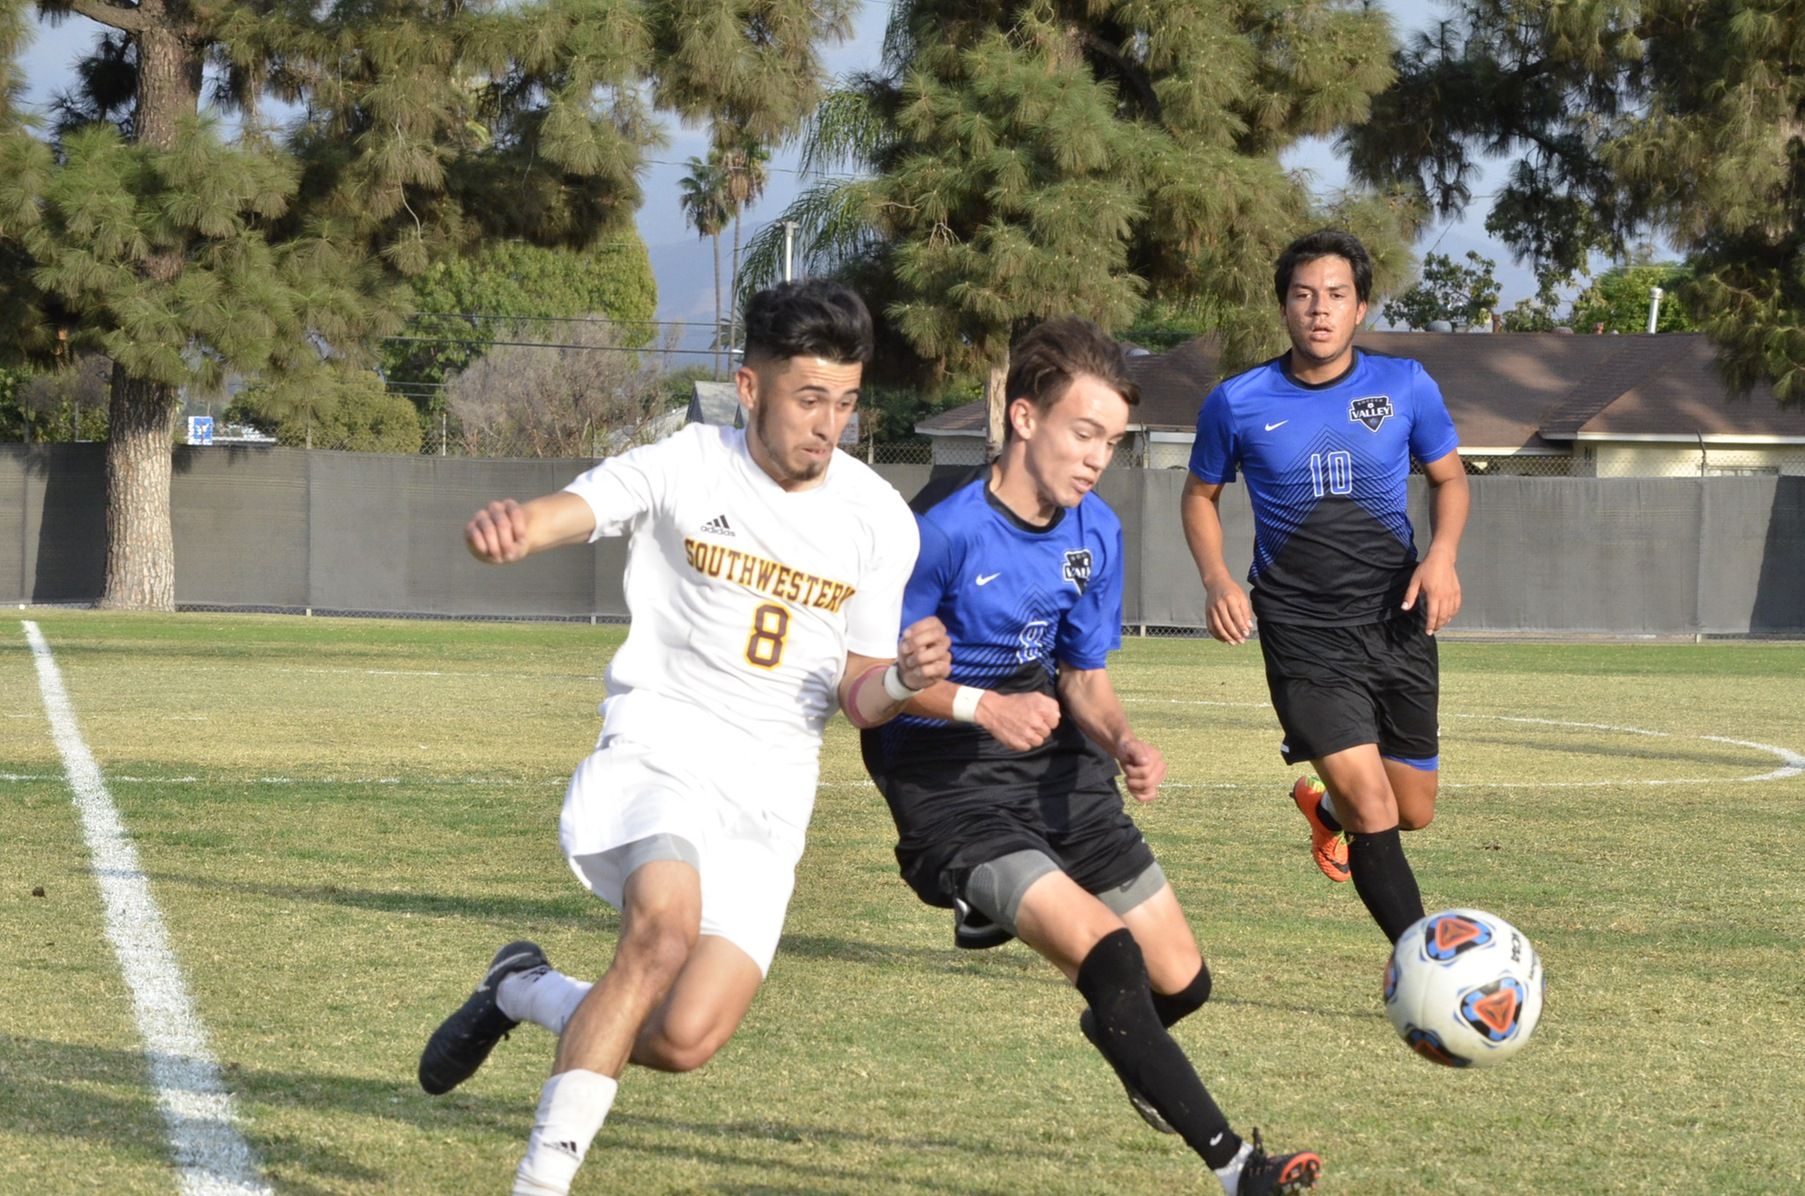 Wolverines Win Physical Battle With Southwestern